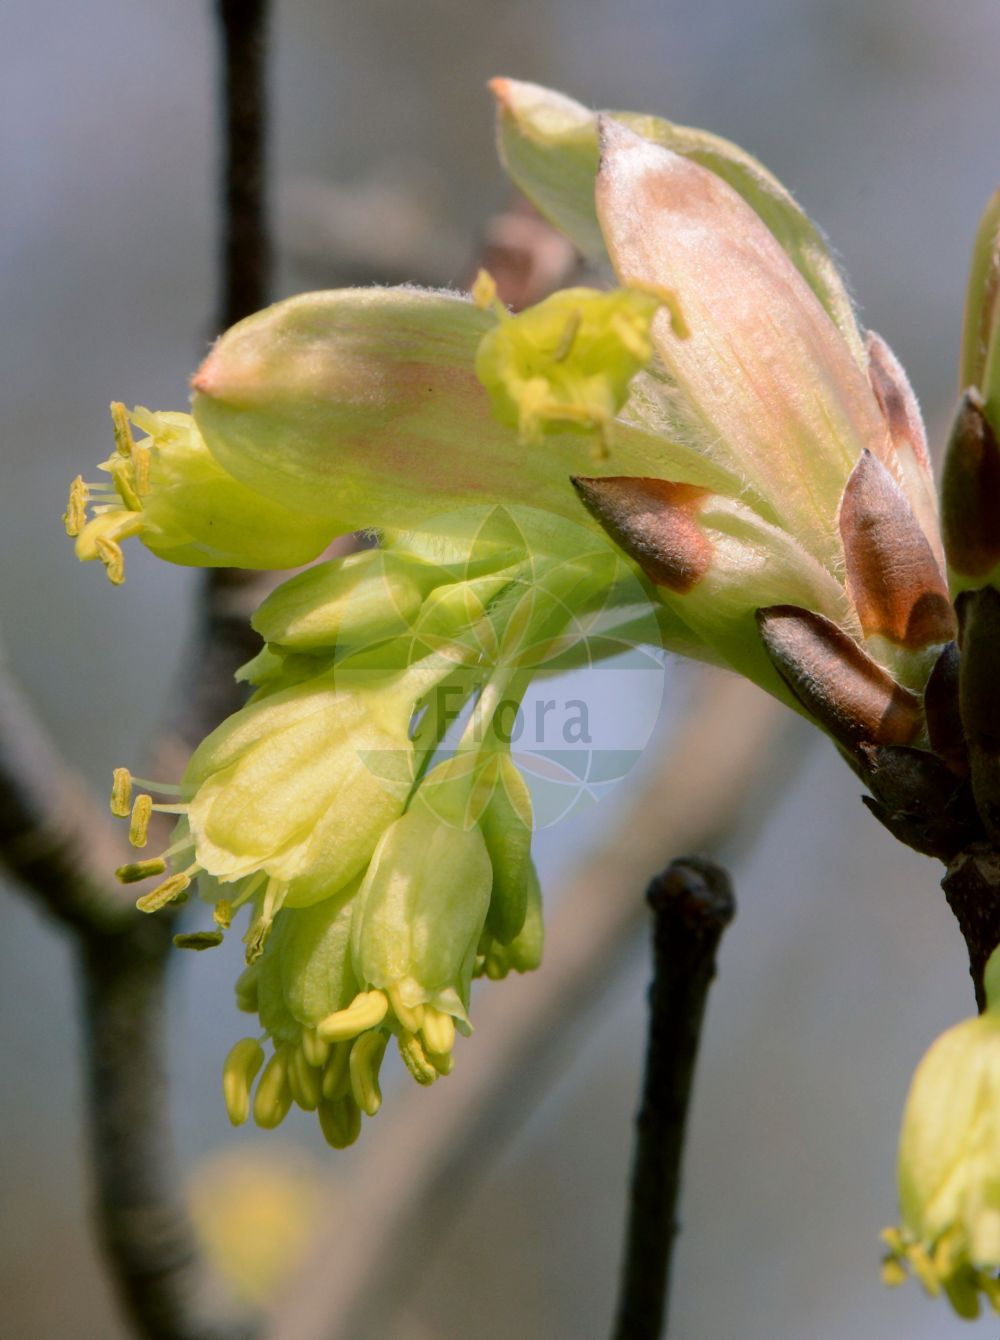 Foto von Acer opalus (Fruehlings-Ahorn - Italian Maple). Das Bild zeigt Knospe und Bluete. Das Foto wurde in Darmstadt, Hessen, Deutschland aufgenommen. ---- Photo of Acer opalus (Fruehlings-Ahorn - Italian Maple).The image is showing bud and flower.The picture was taken in Darmstadt, Hesse, Germany. (Acer opalus,Fruehlings-Ahorn,Italian Maple,Acer hispanicum,Acer italum,Acer opulifolium,Acer rotundifolium,Schneeball-Ahorn,Opalus Maple,Acer,Ahorn,Maple,Sapindaceae,Seifenbaumgewaechse,Soapberry family,Knospe,Bluete,bud,flower)